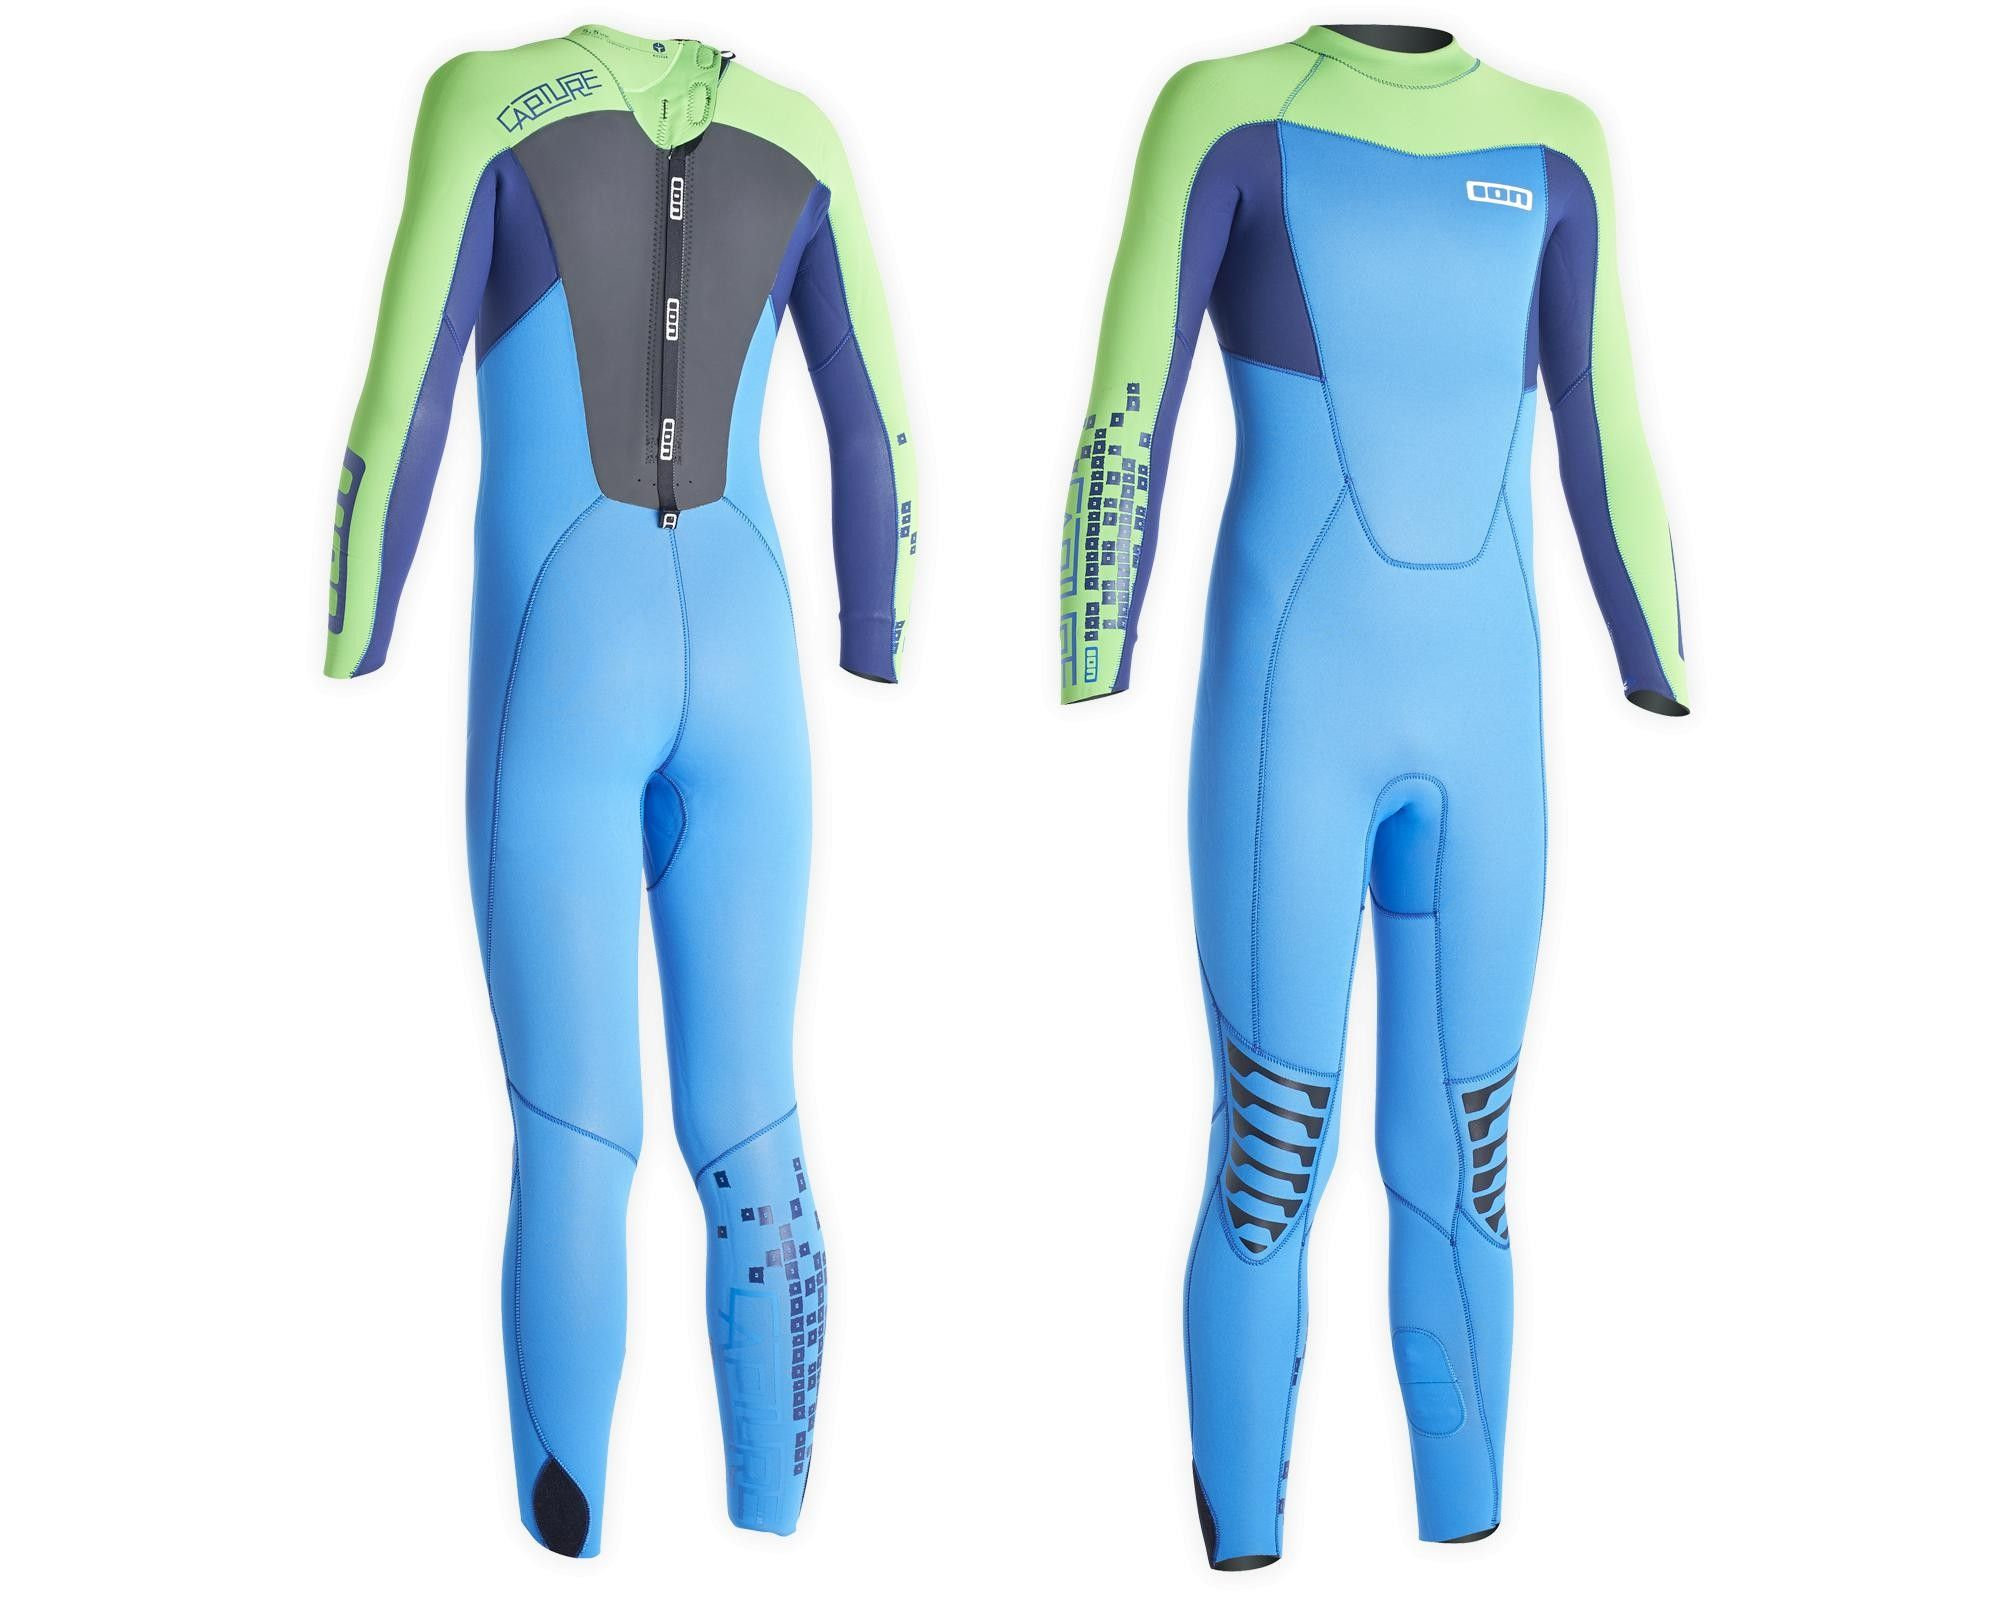 KID - ION - Wetsuit BS - Capture Semidry 5,5/4,5 DL (CN)